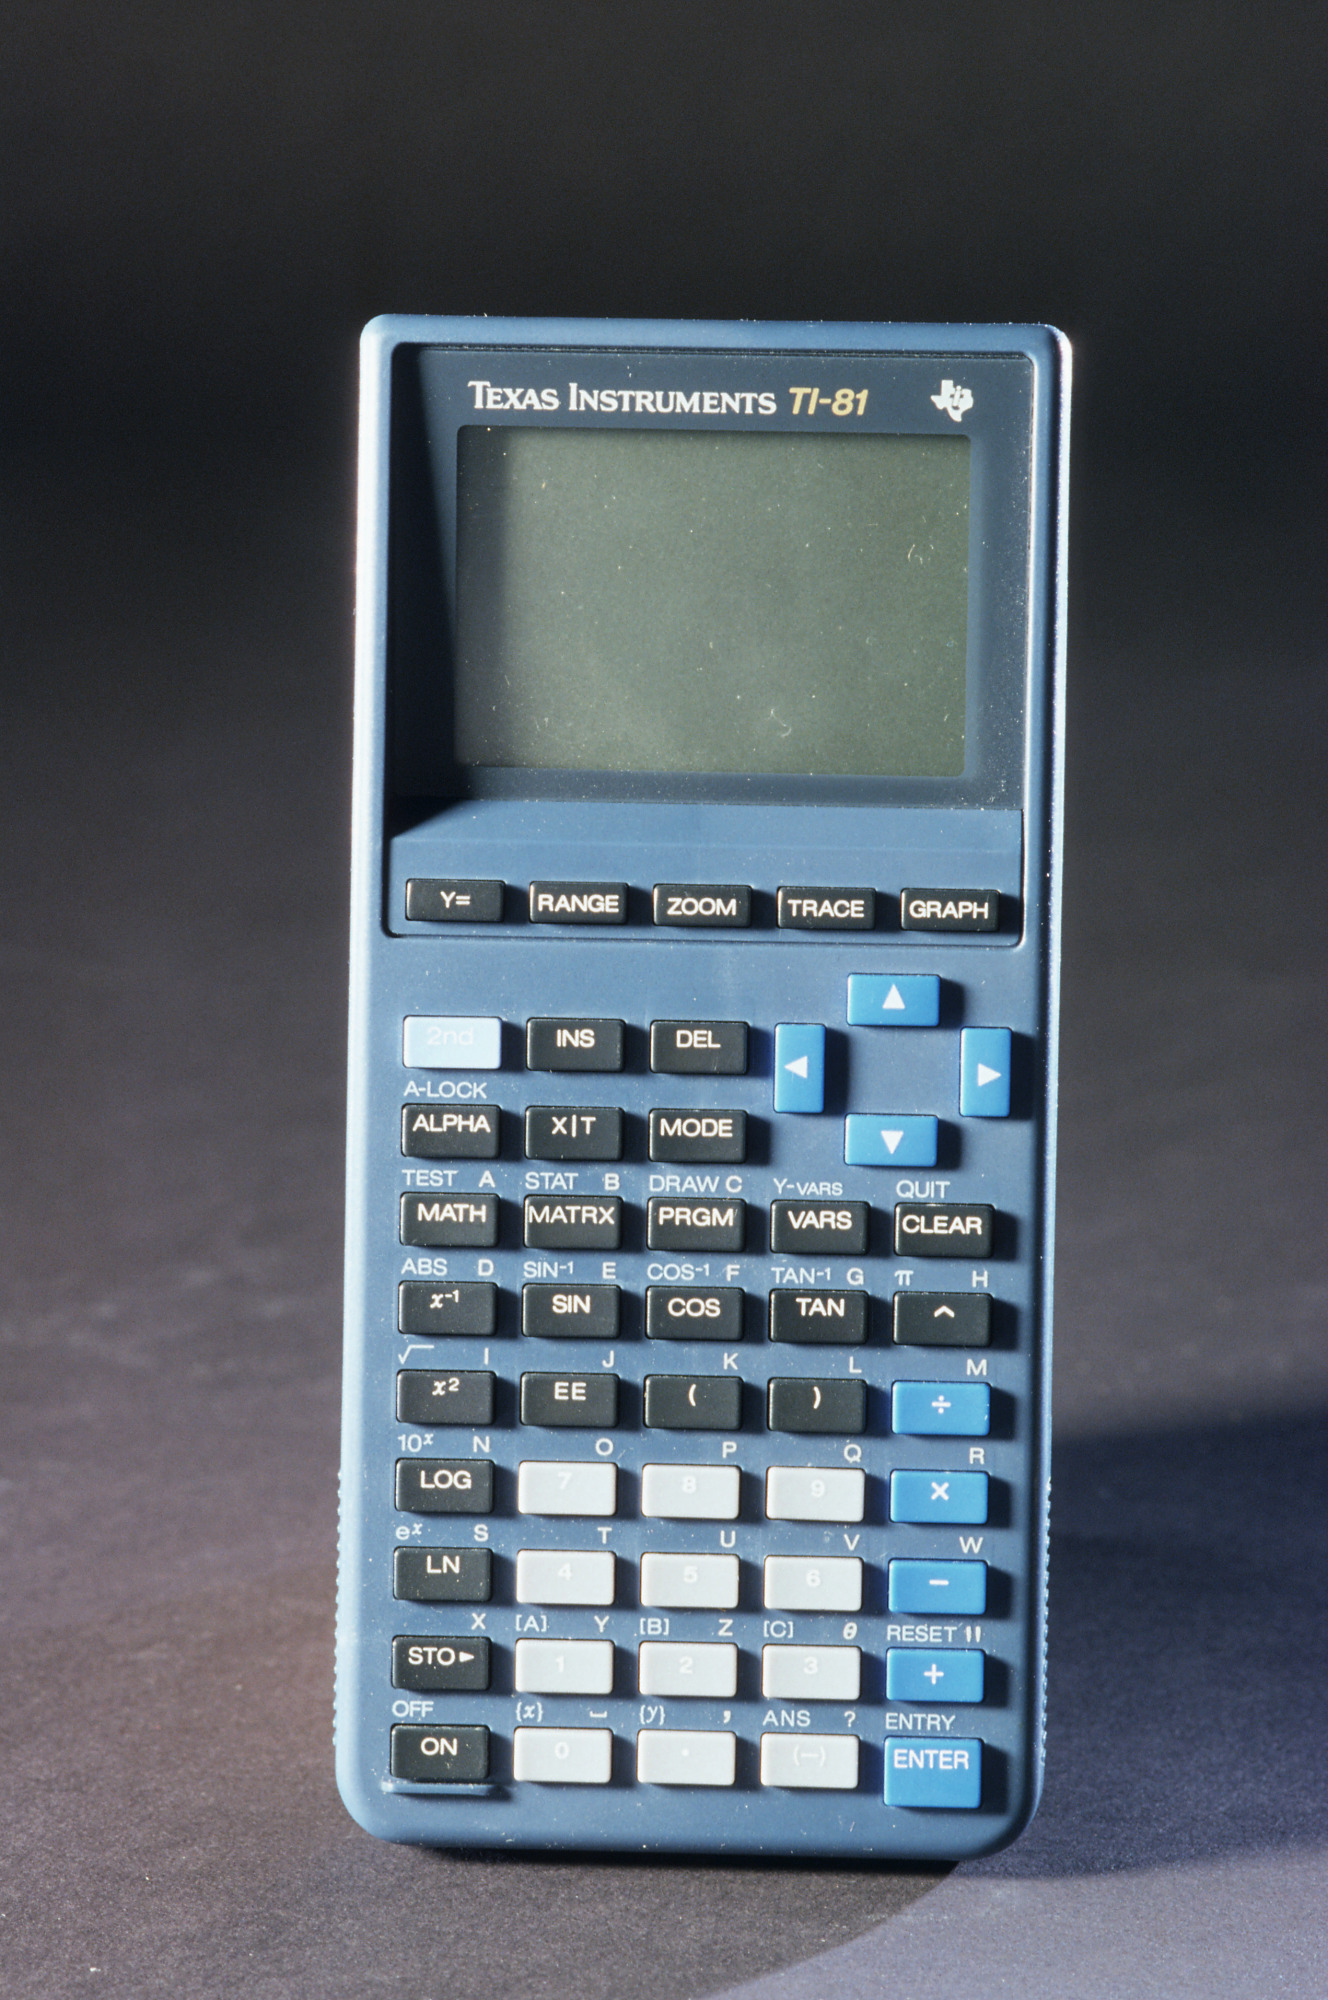 Texas Instruments TI-81 Handheld Electronic Calculator | National ...